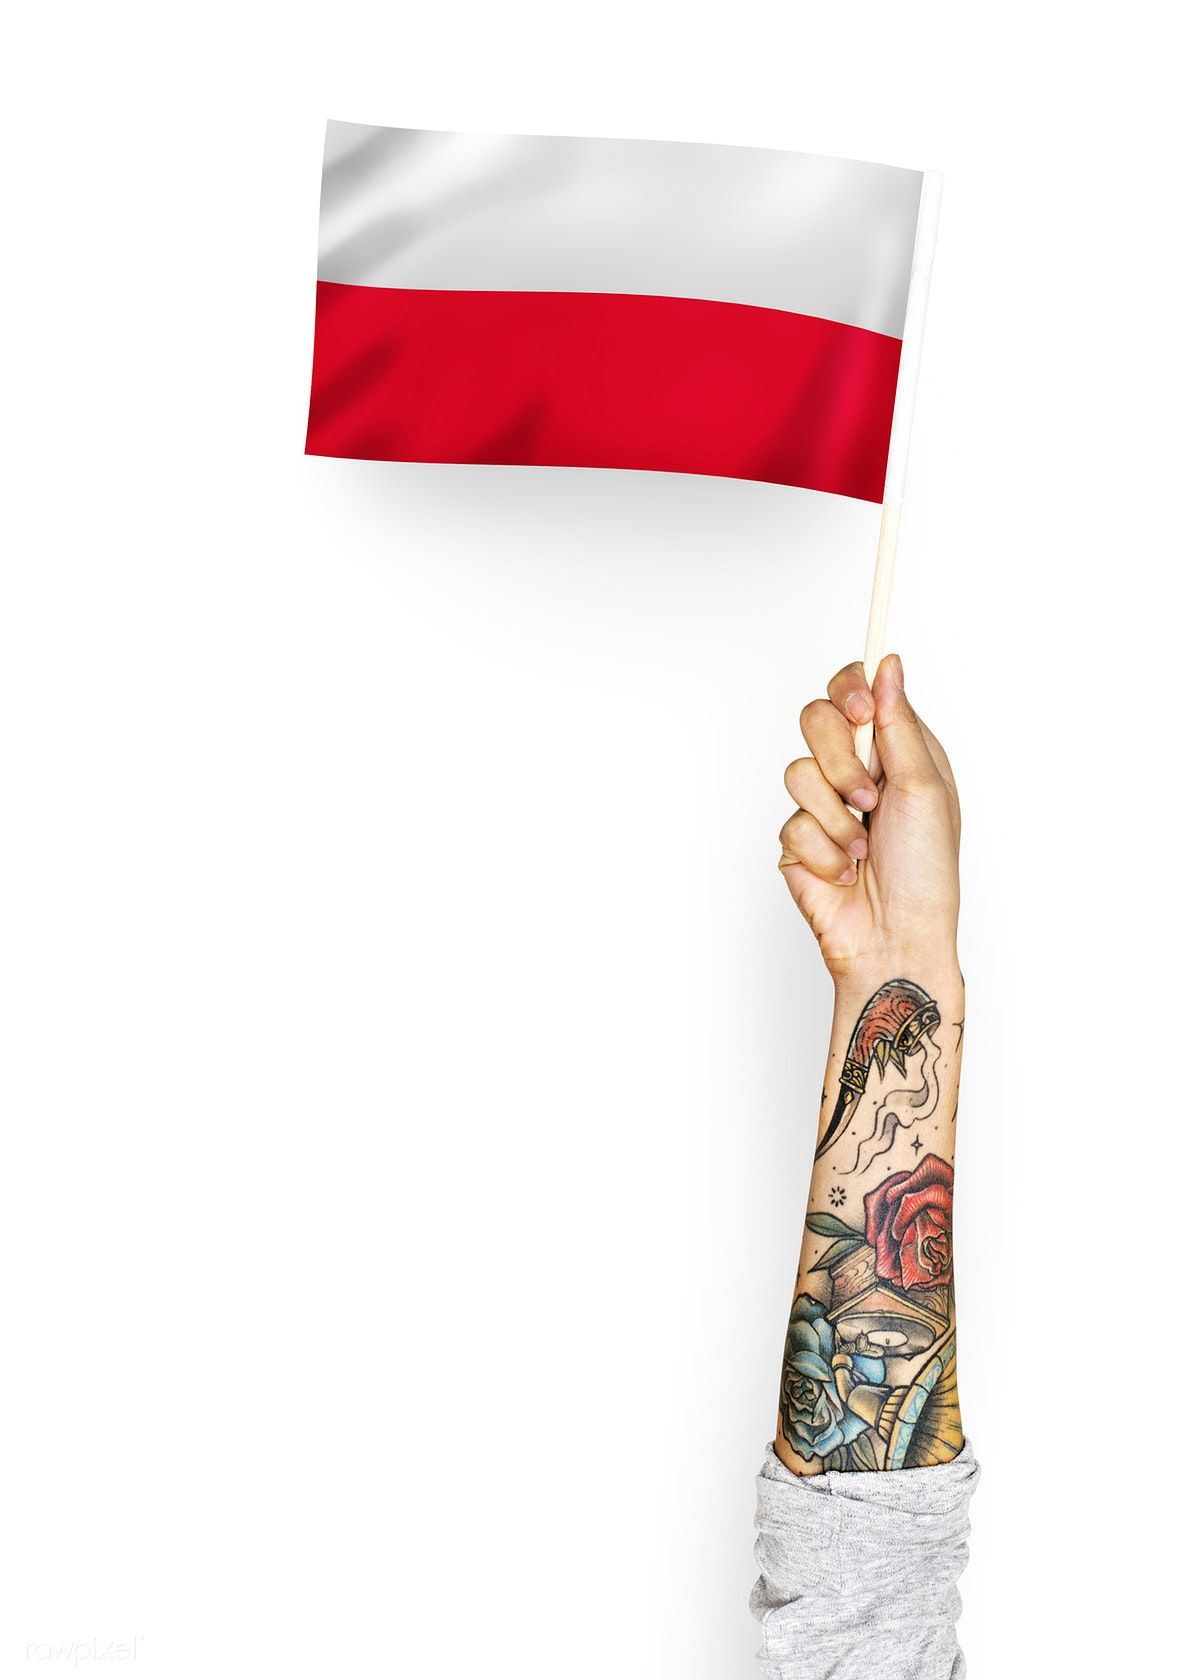 Person Waving The Flag Of Republic Of Poland Free Image By Rawpixel Com Flags Of The World Flag Free Images